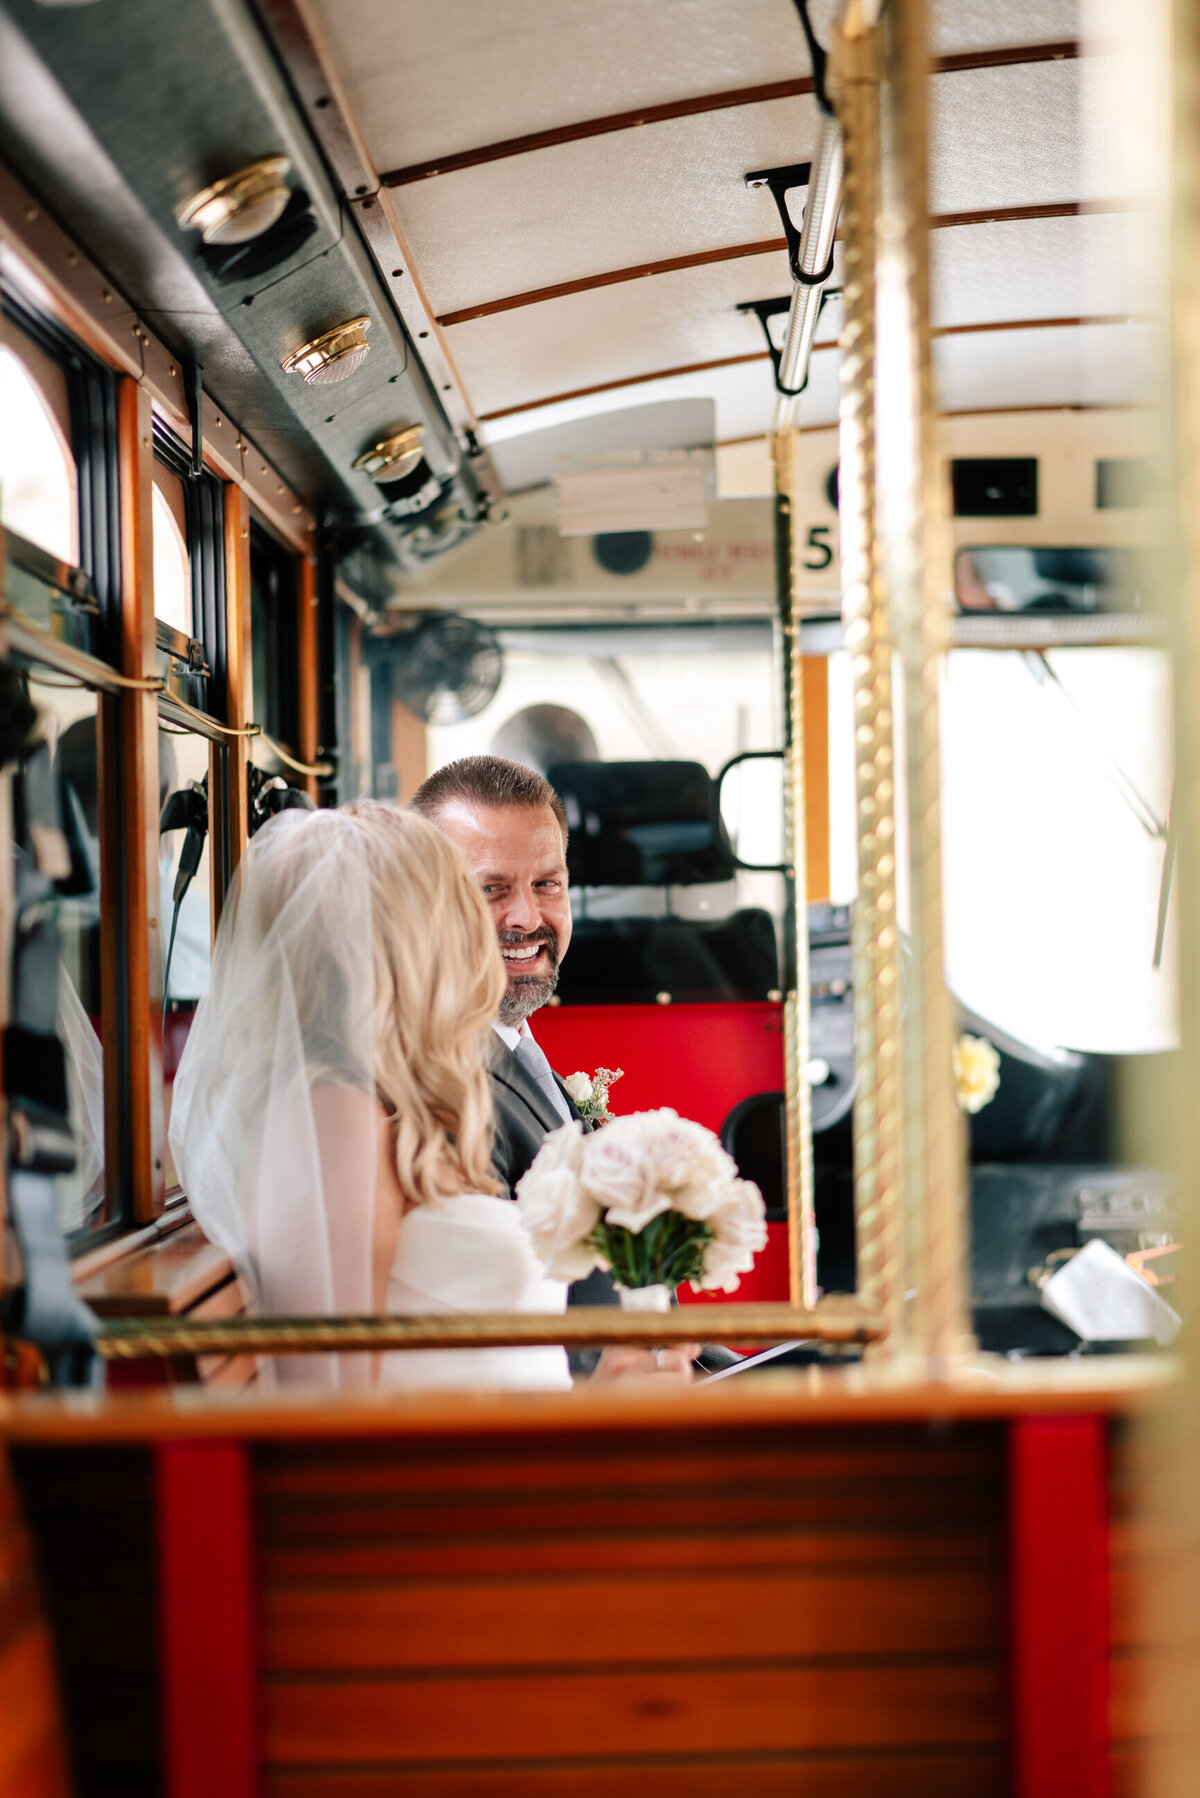 Bride and father on the red trolley at Karma Vineyards in Chelan, WA